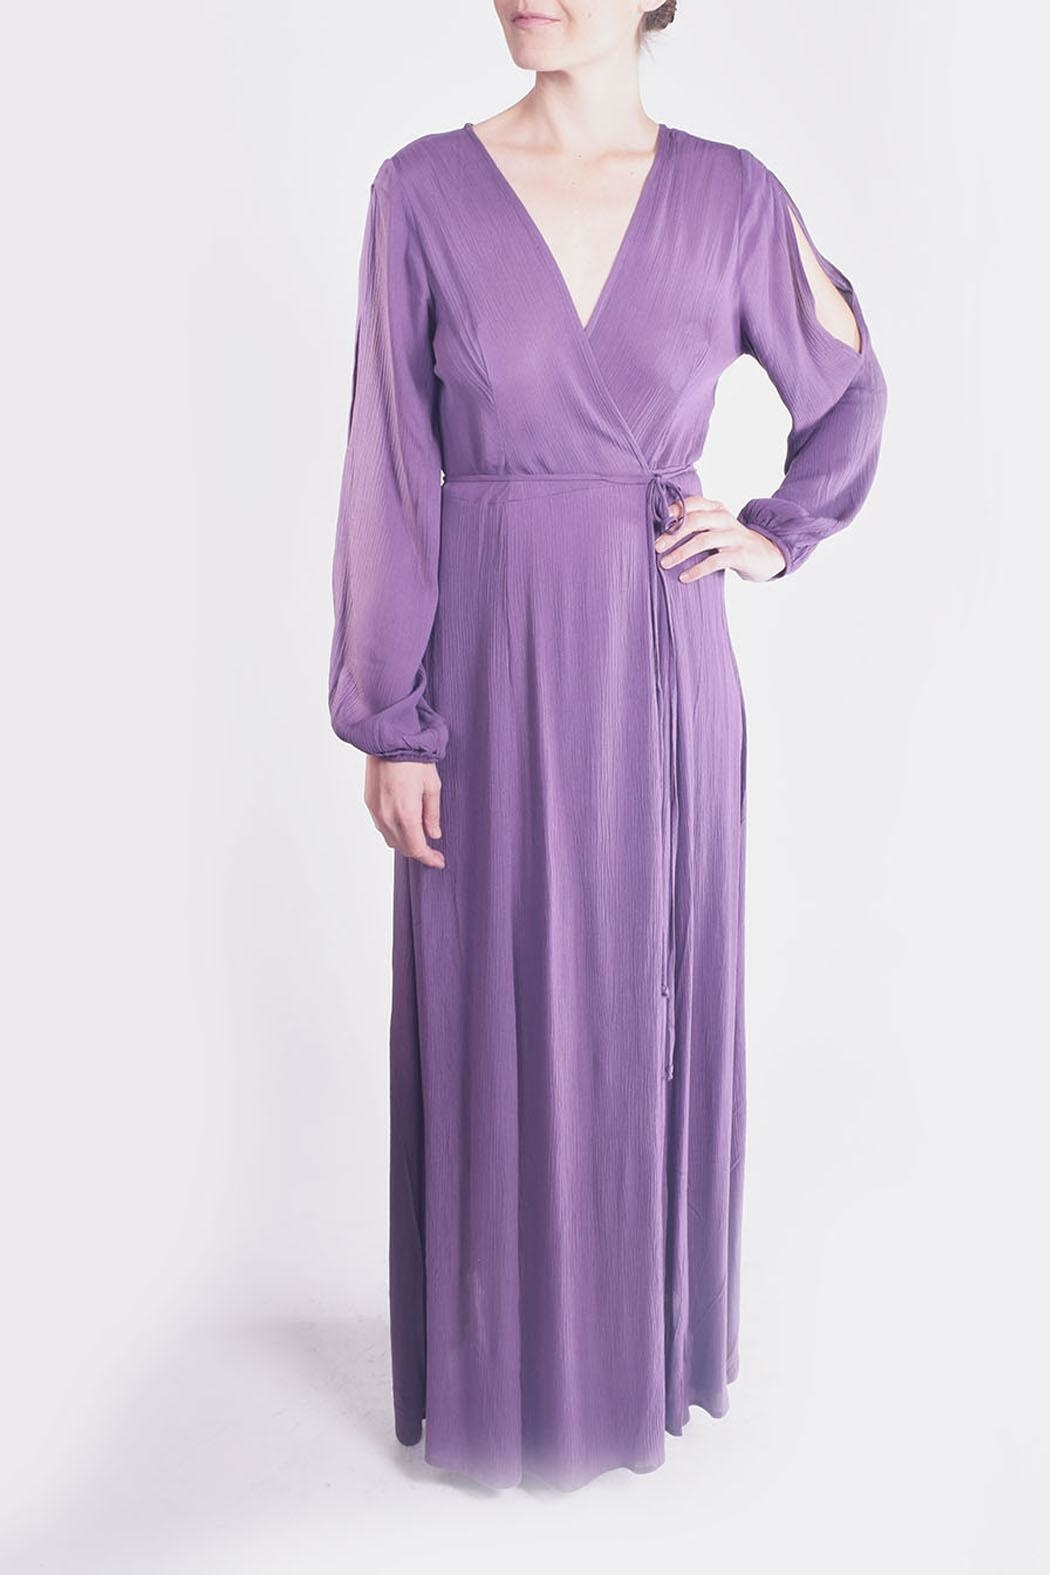 rokoko Lavender Wrap Maxi-Dress - Side Cropped Image